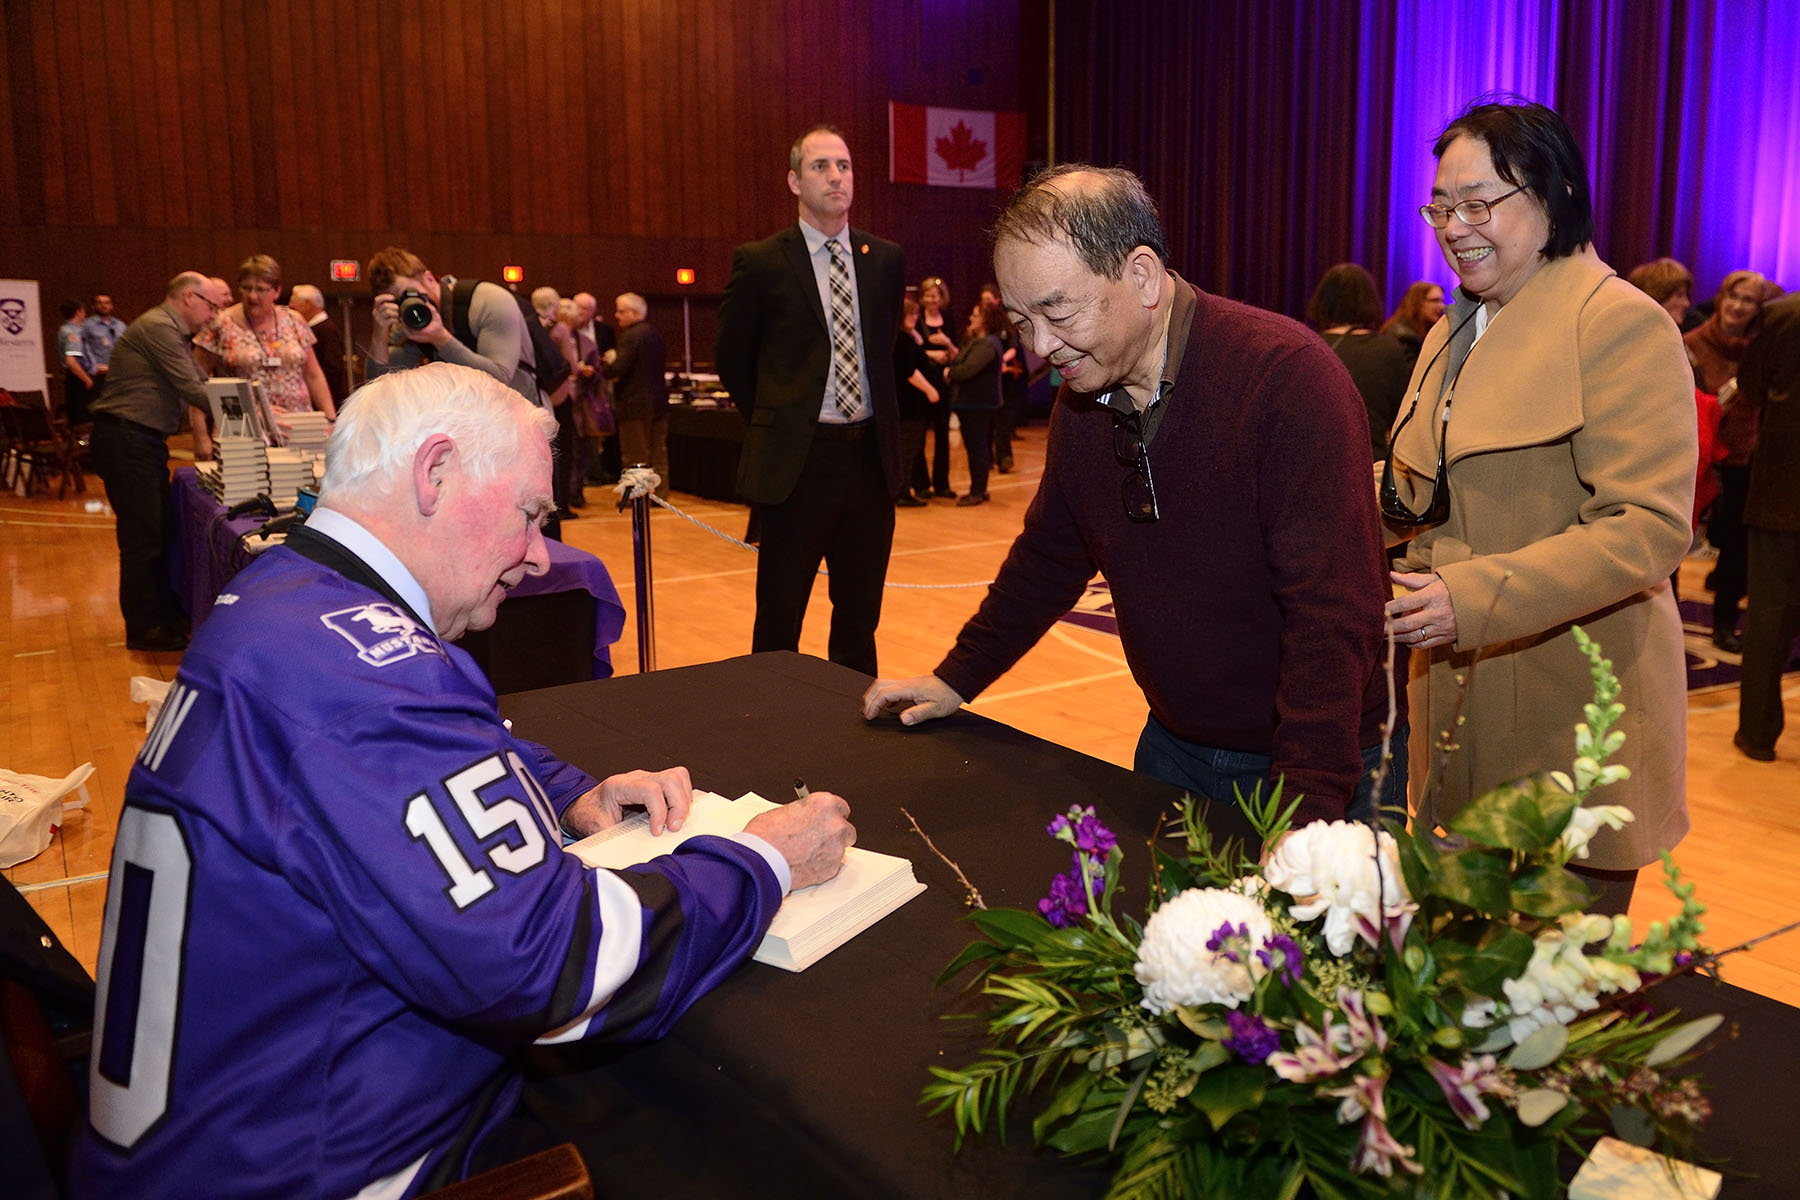 The event ended with a reception, during which time the Governor General took part in a signing for his book, The Idea of Canada: Letters to a Nation.